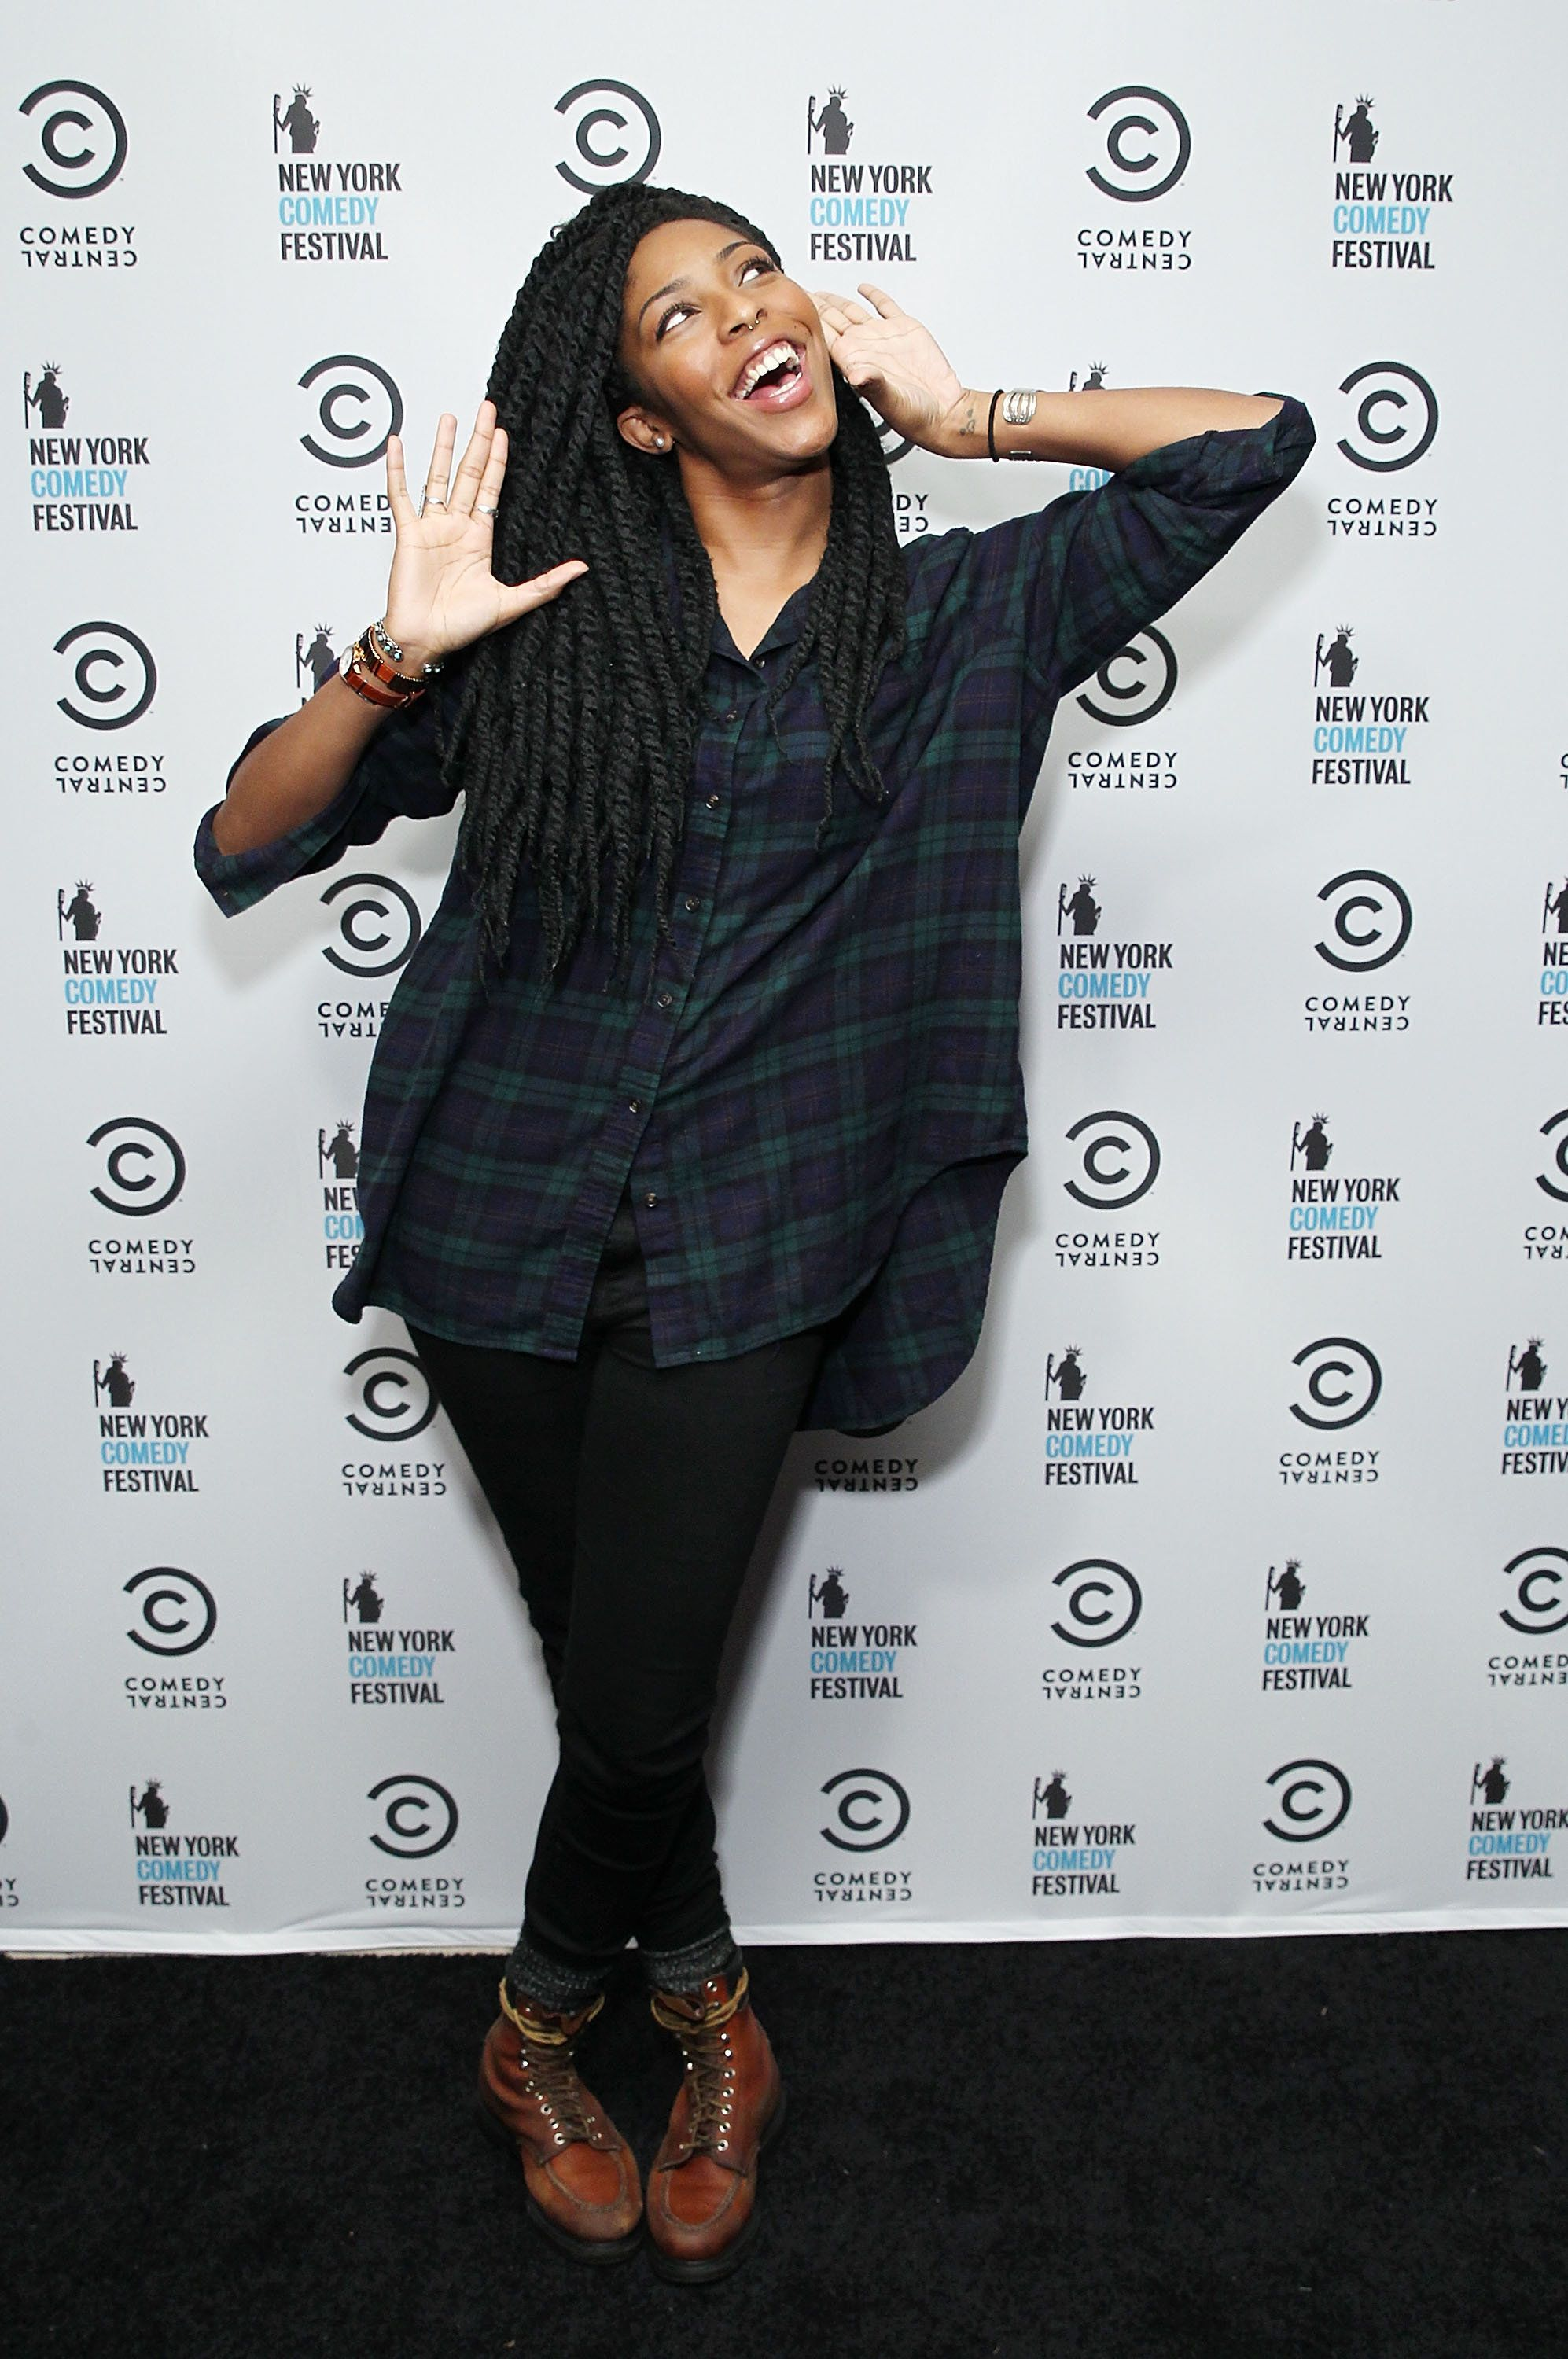 NEW YORK, NY - NOVEMBER 06:  'The Daily Show' correspondent, Jessica Williams attend The New York Comedy Festival Annual Kick-Off Party on November 6, 2014 in New York City.  (Photo by Astrid Stawiarz/Getty Images for Comedy Central)